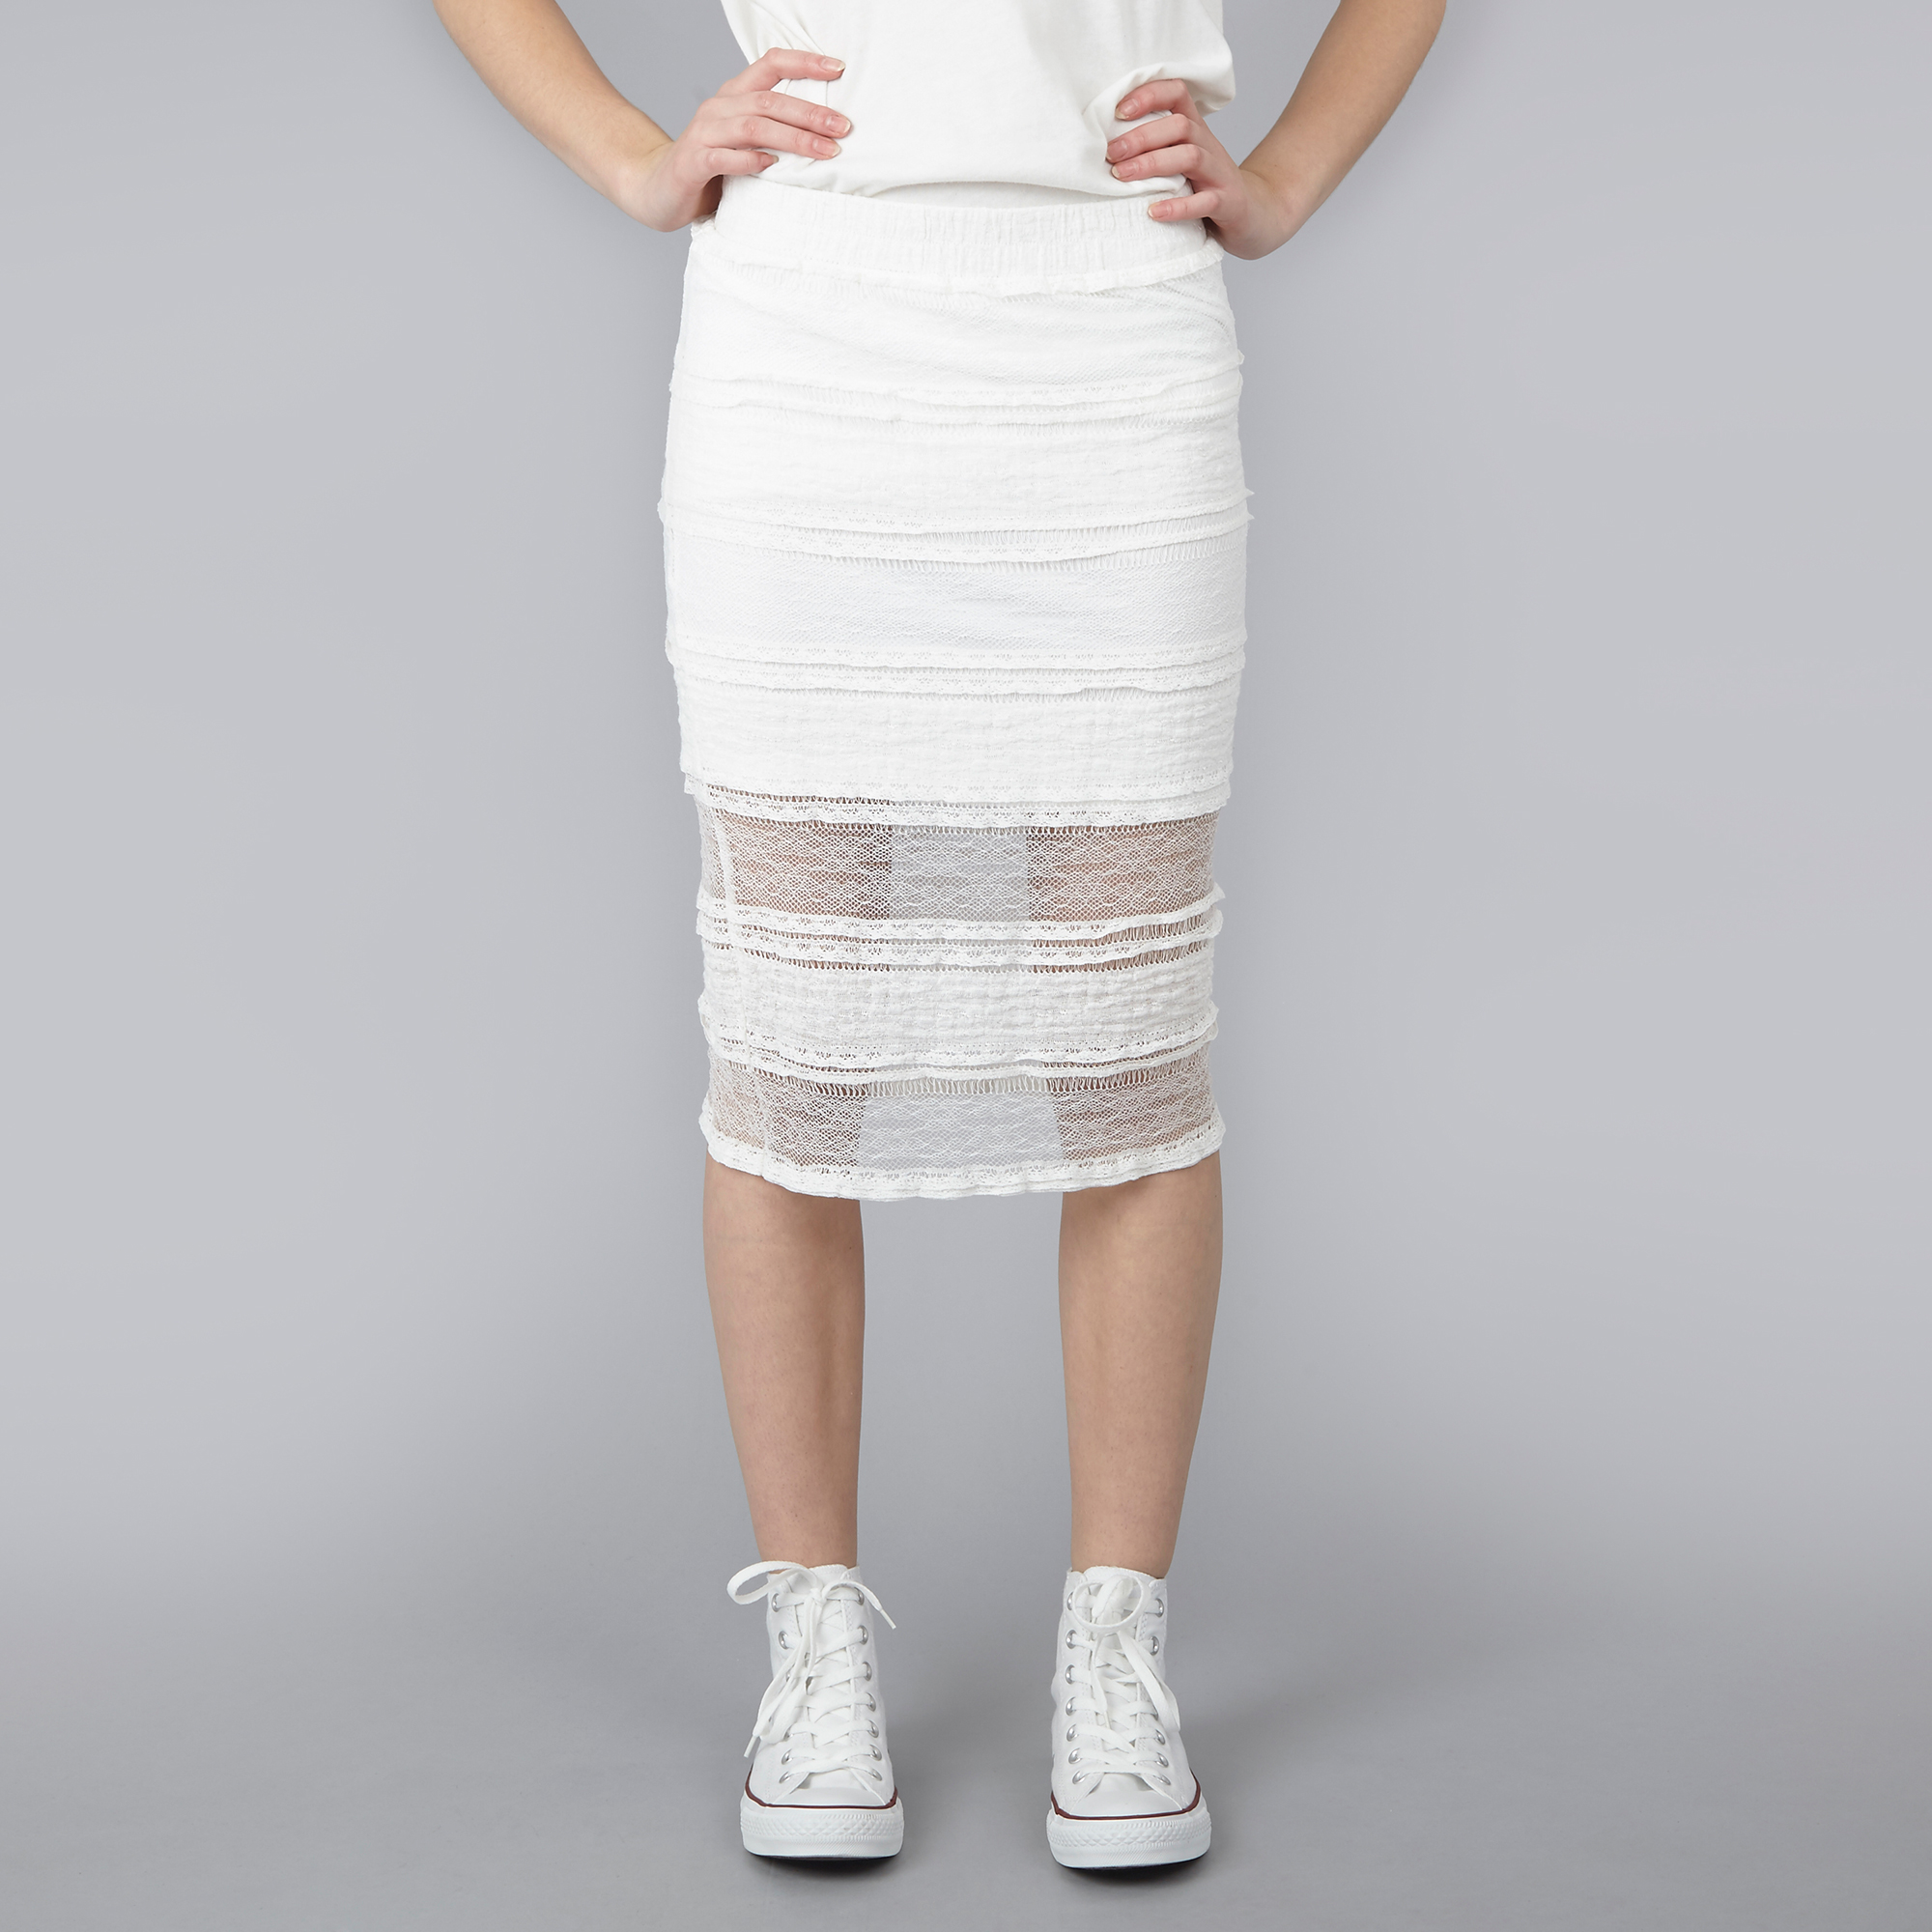 Fashion week Pencil lace skirt cream for lady